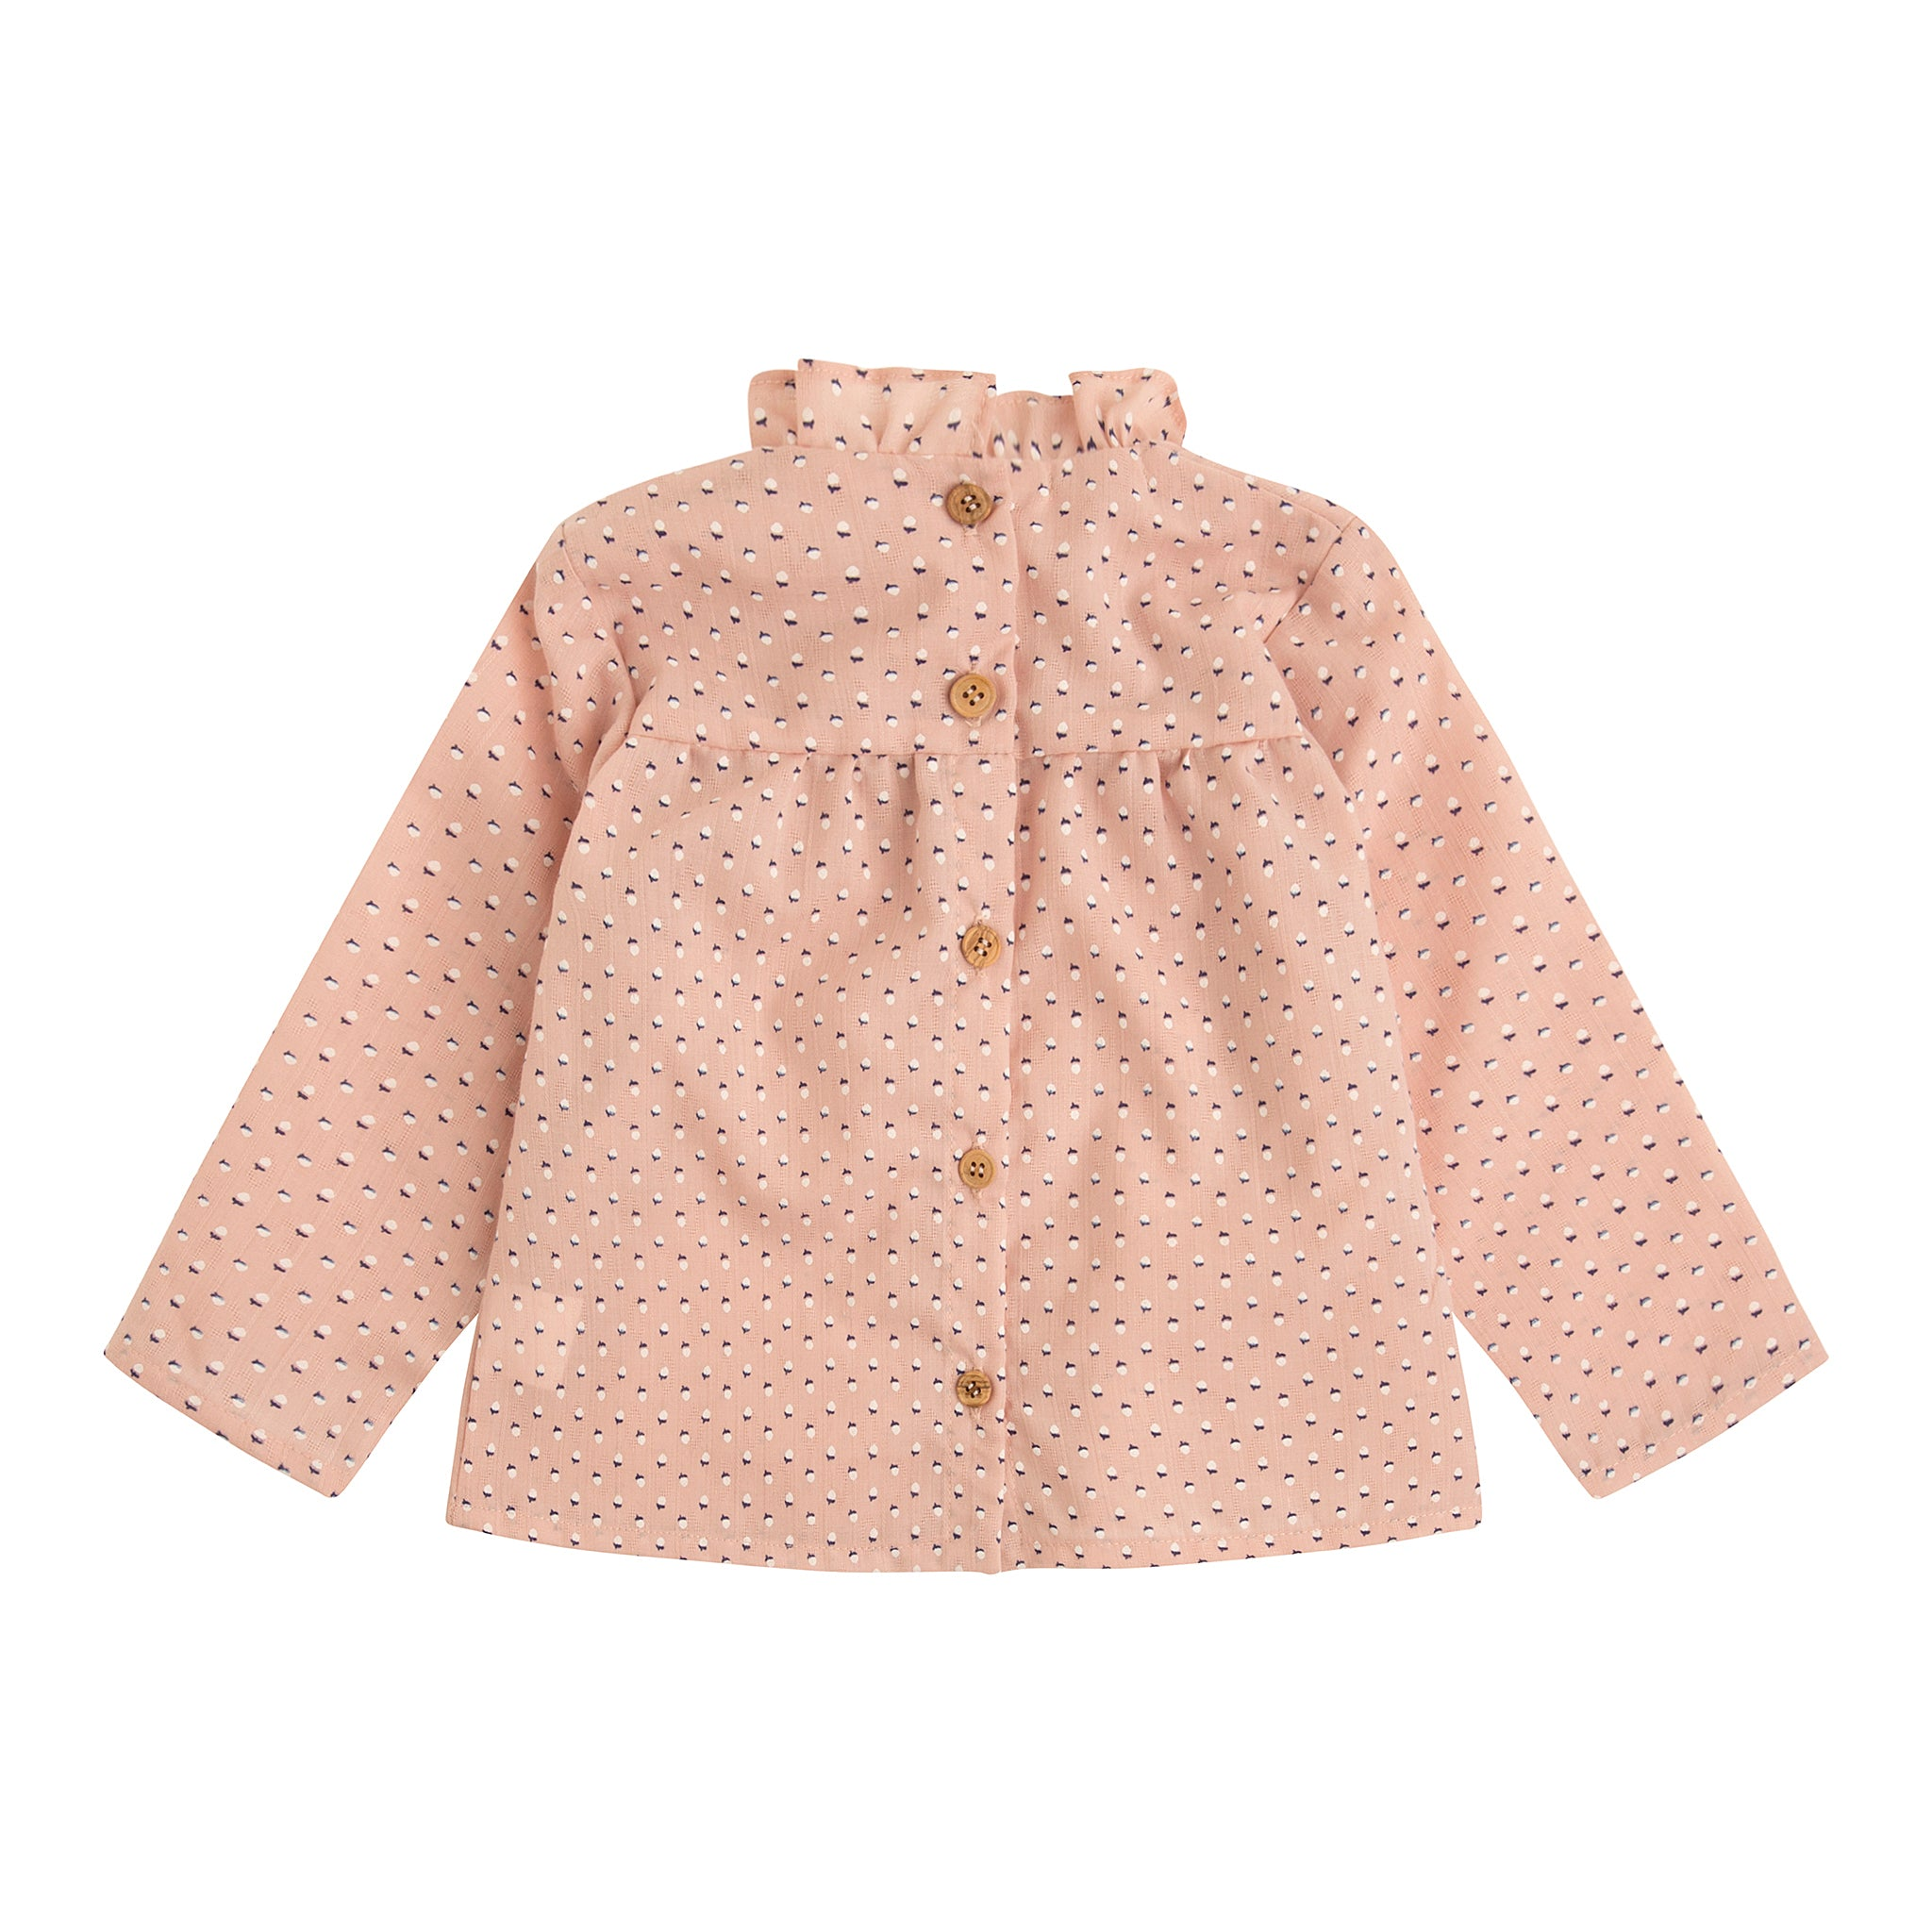 back view blush pink tiny scorn print girl's blouse with gathered collar and wooden buttons down the back